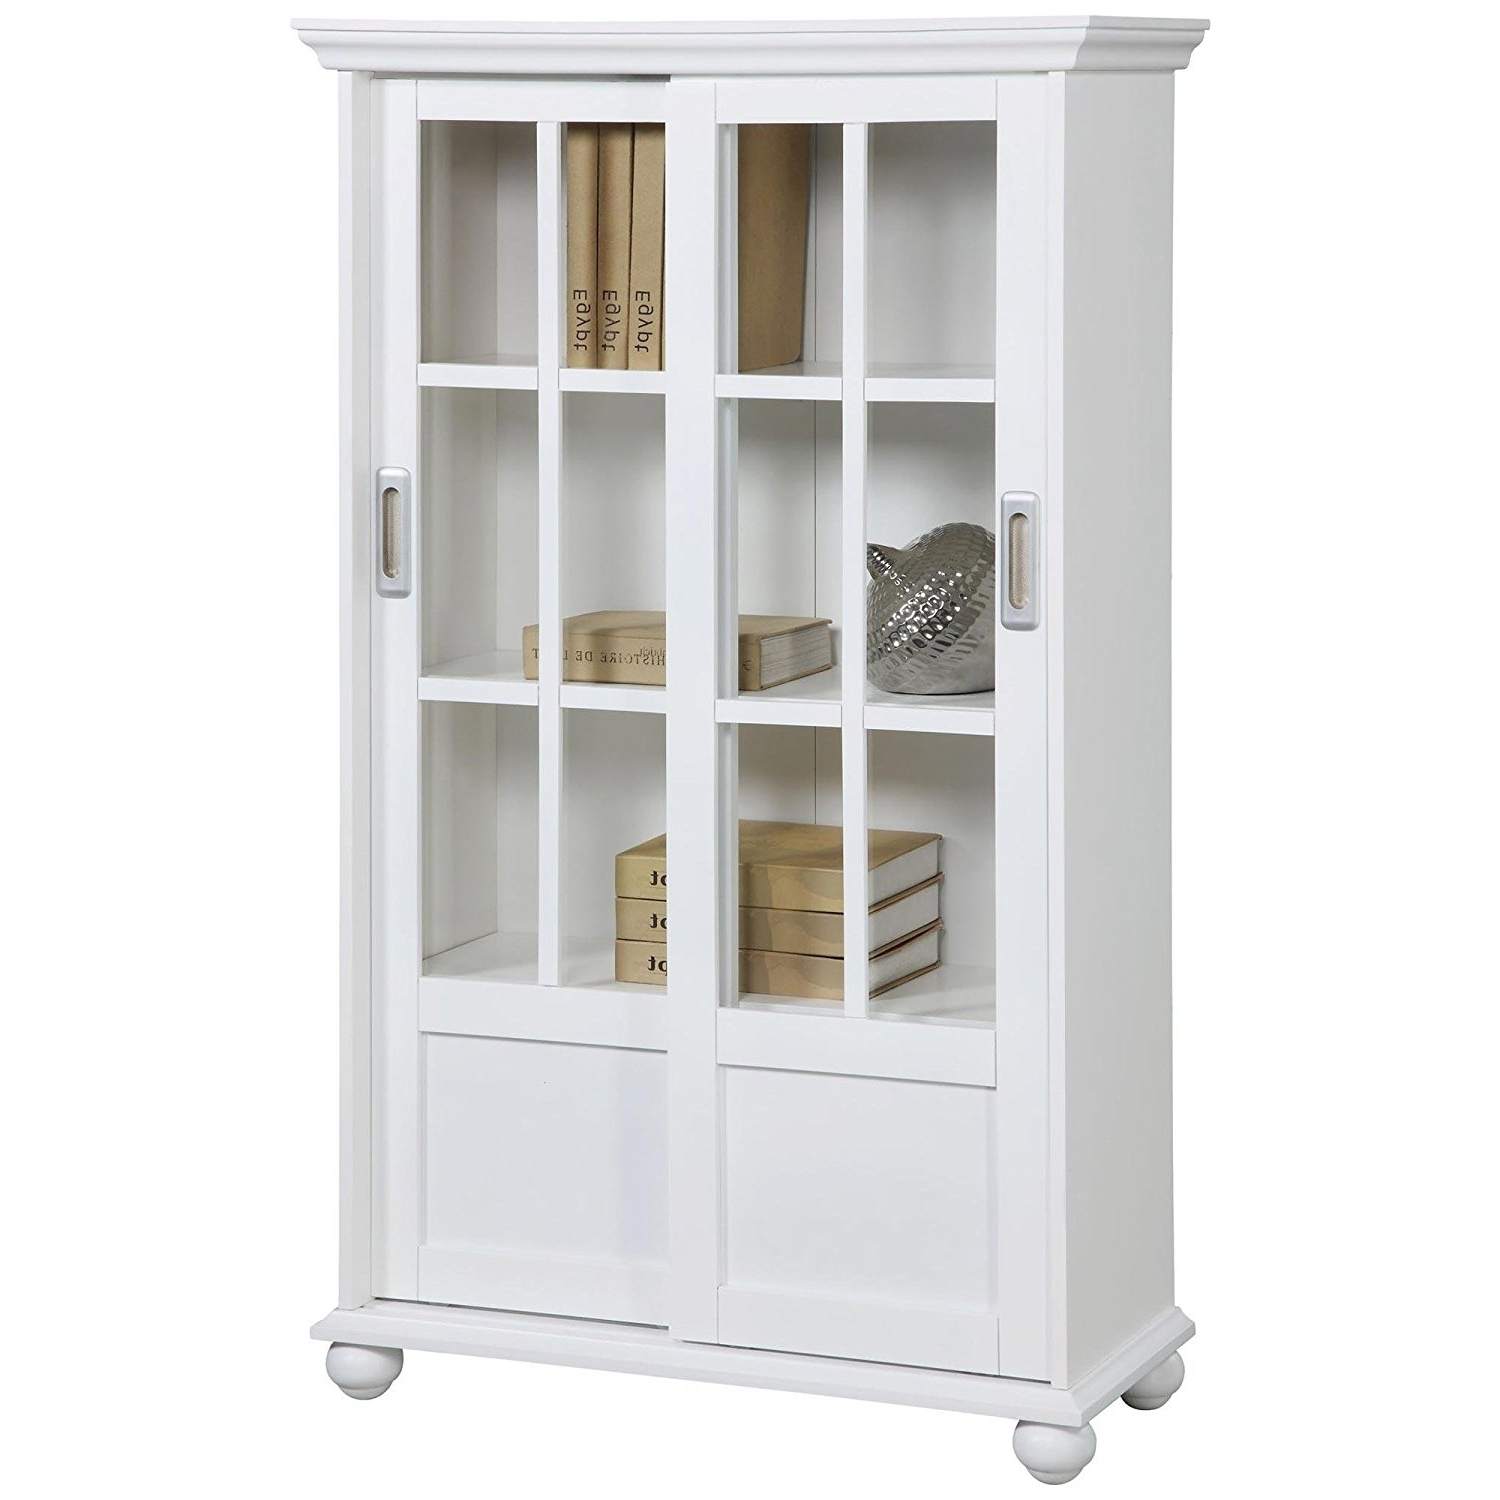 Favorite Amazon: Ameriwood Home Aaron Lane Bookcase With Sliding Glass Inside White Bookcases With Glass Doors (View 7 of 15)